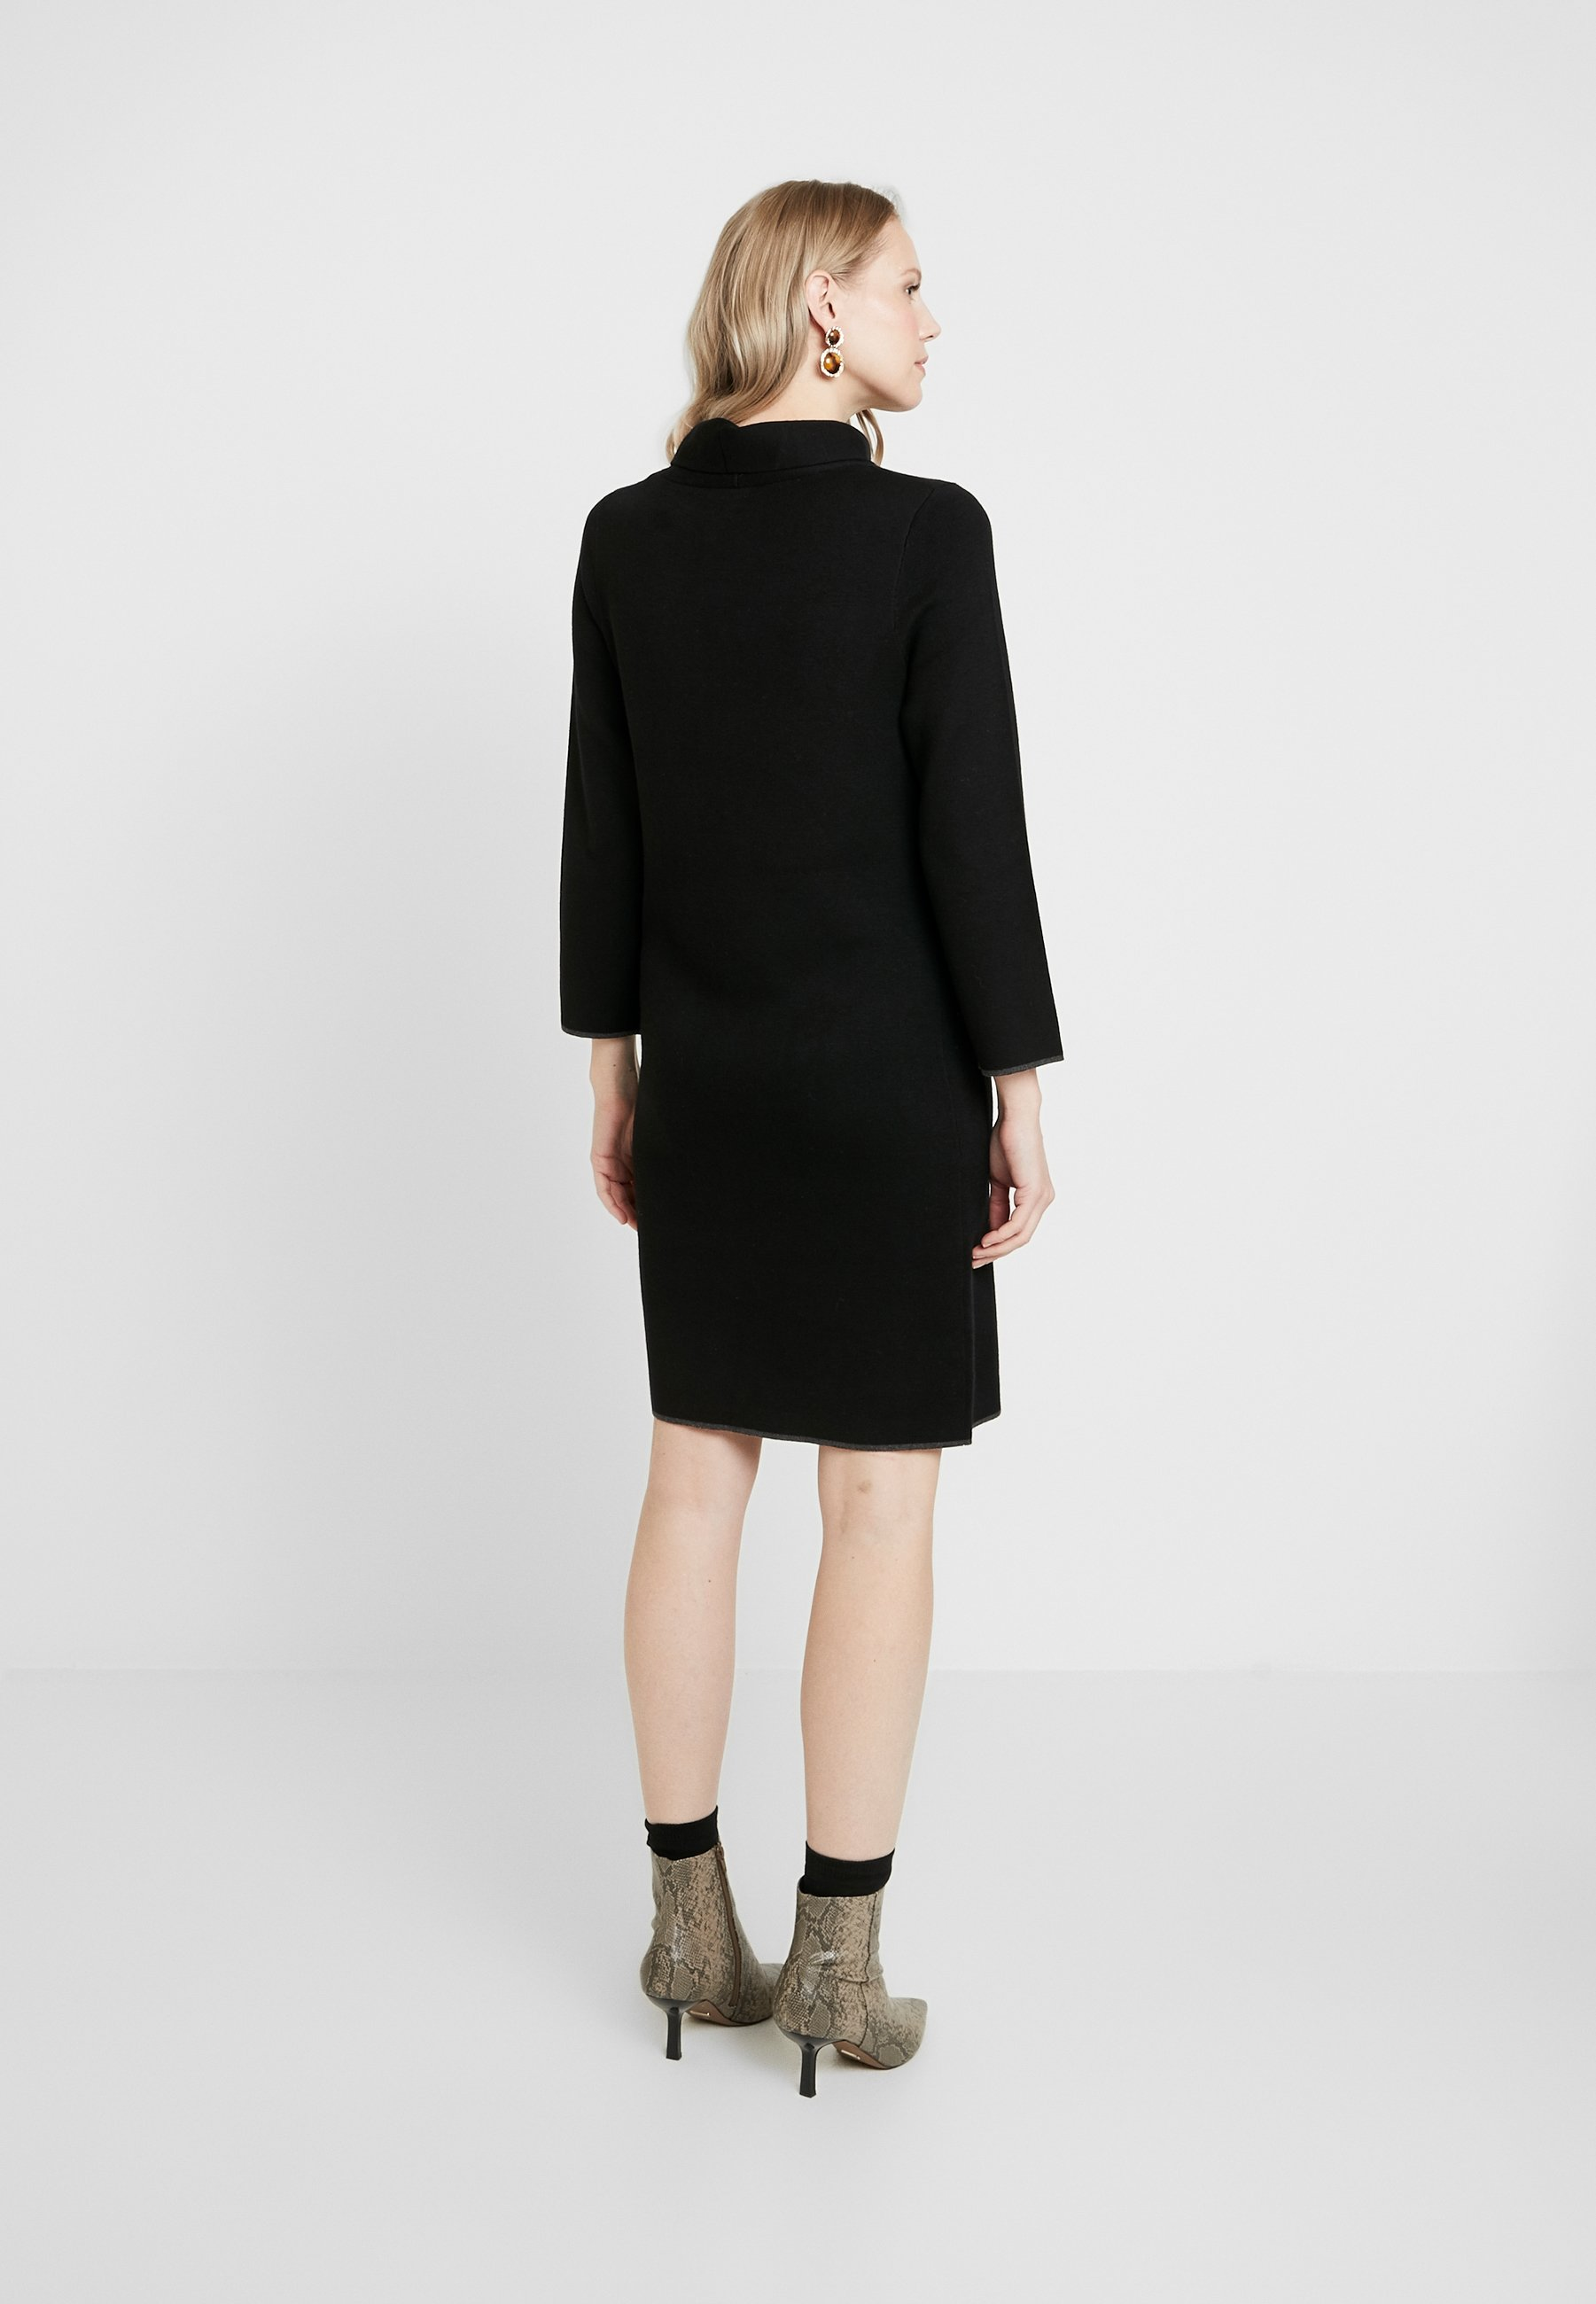 Tom Tailor Dress With Contrast Tippings - Jumper Deep Black UK